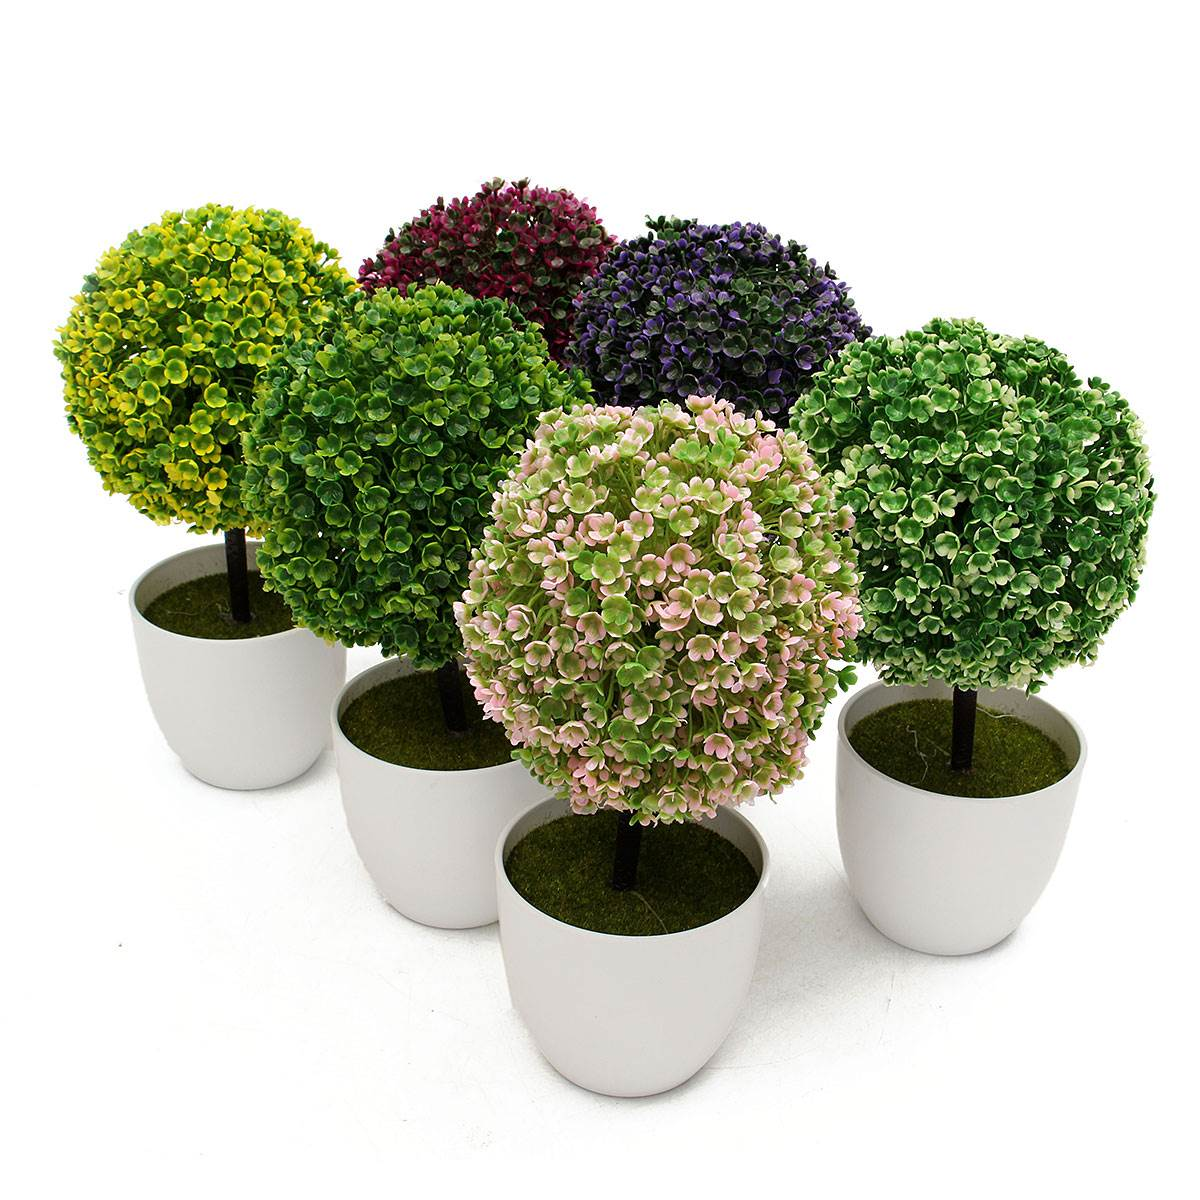 Artificial Topiary Trees Cheap Part - 15: Artificial Topiary Tree Ball Plant Flowers Buxus Plants In Pot Indoor Fake  Bonsai For Garden Home